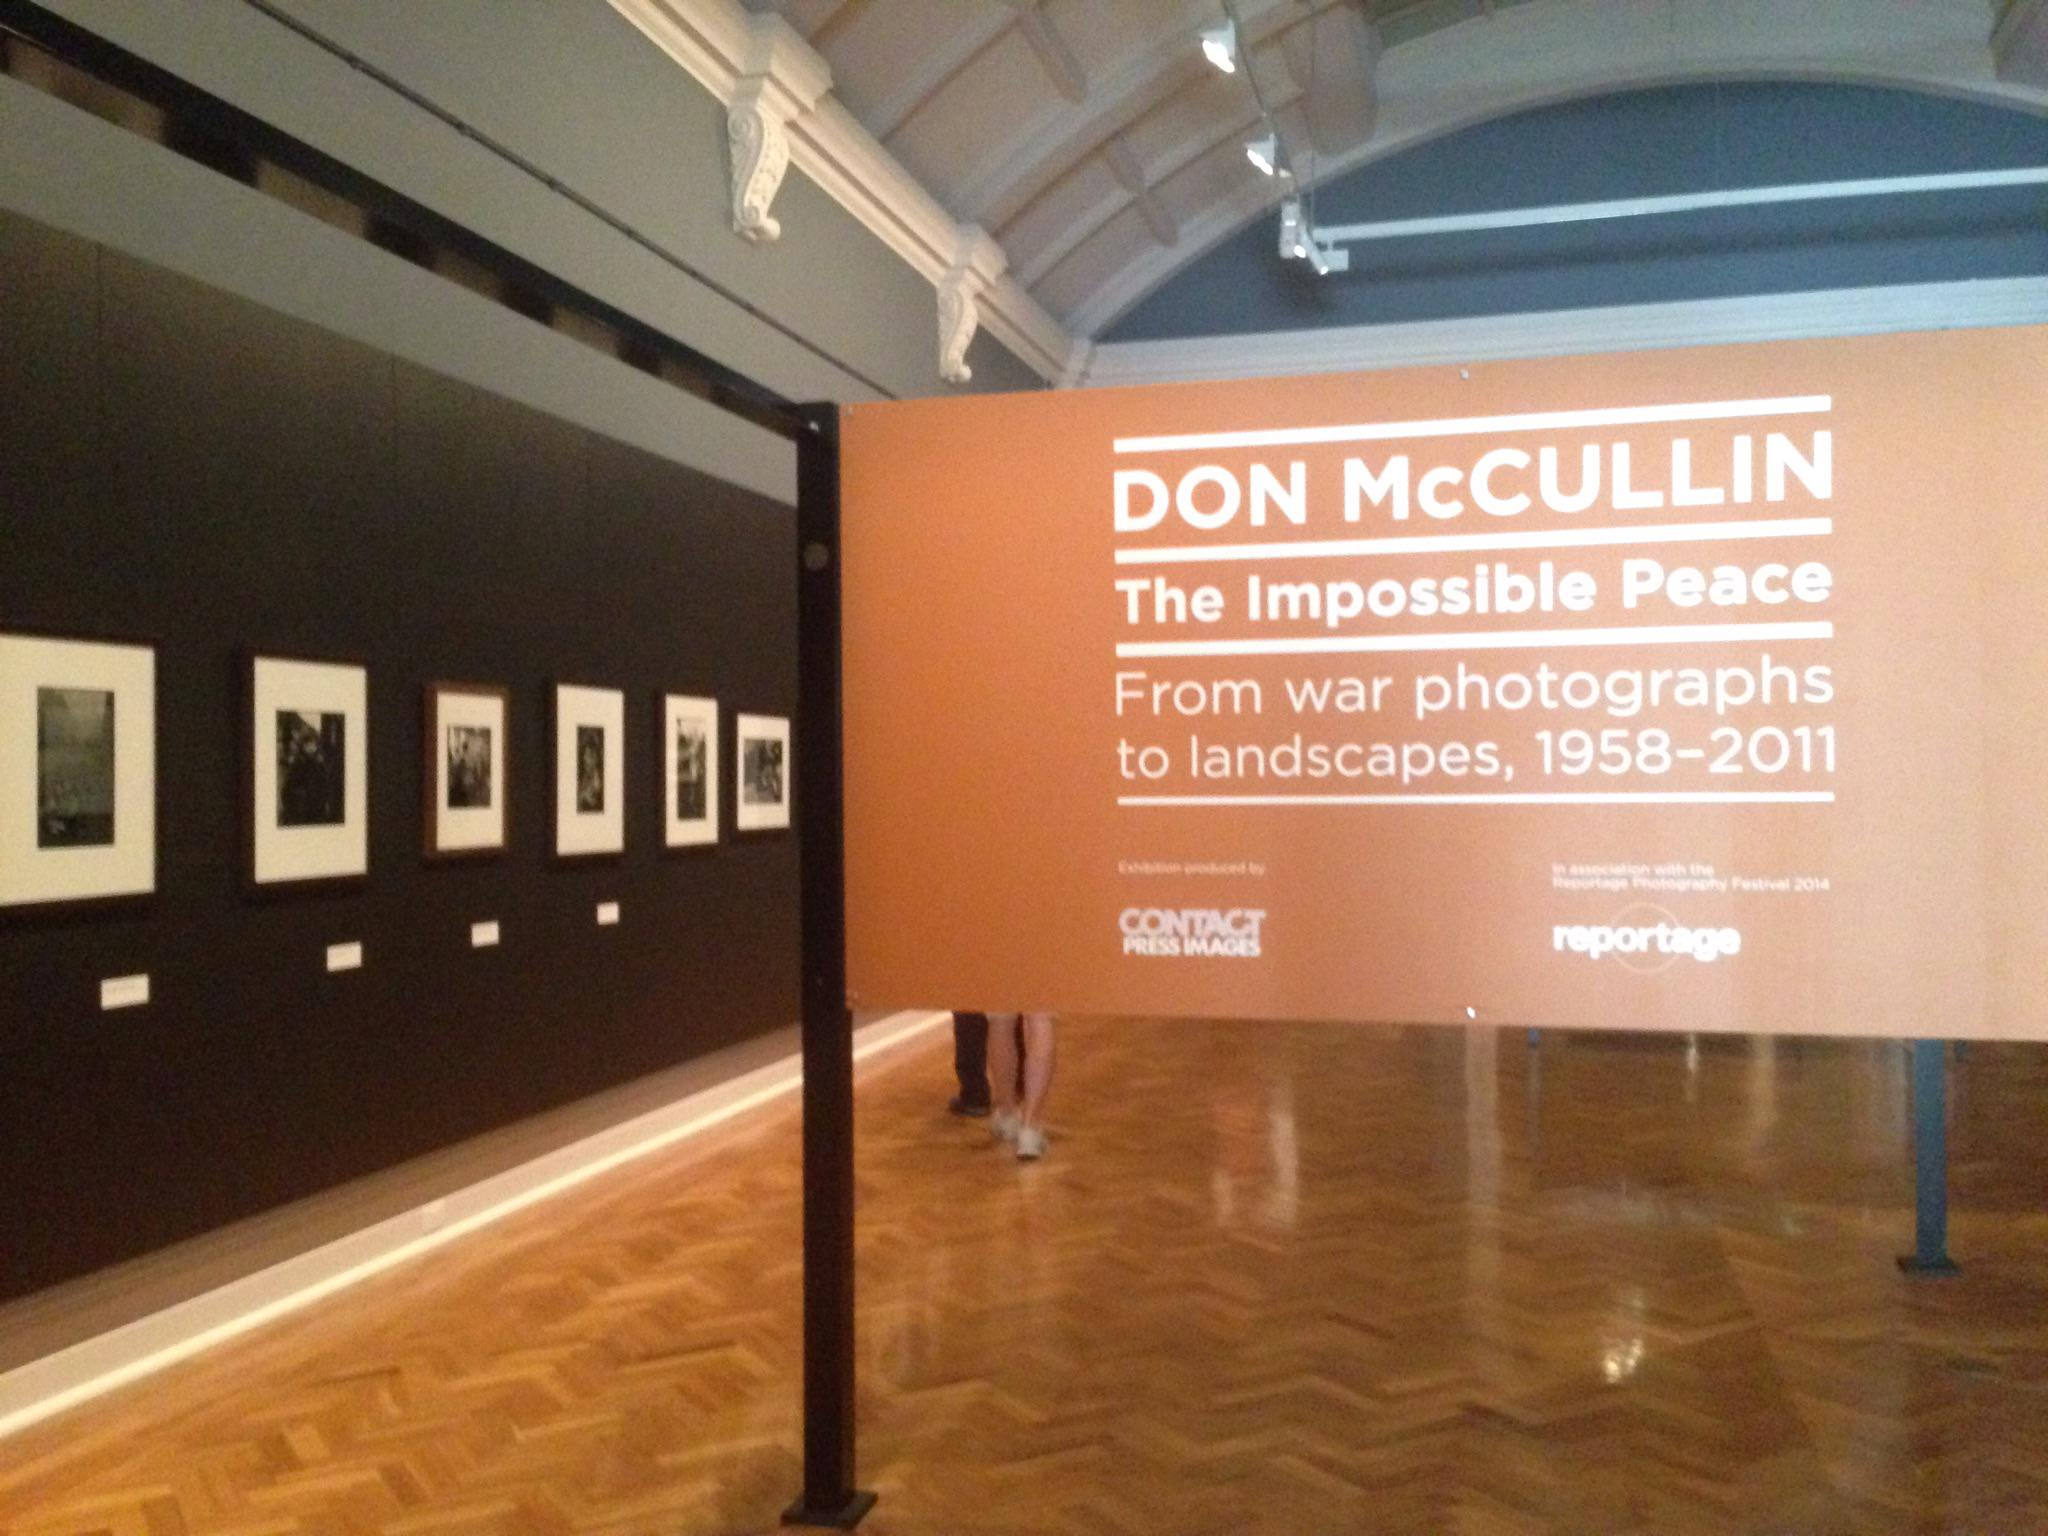 Don McCullin exhibition at State Library